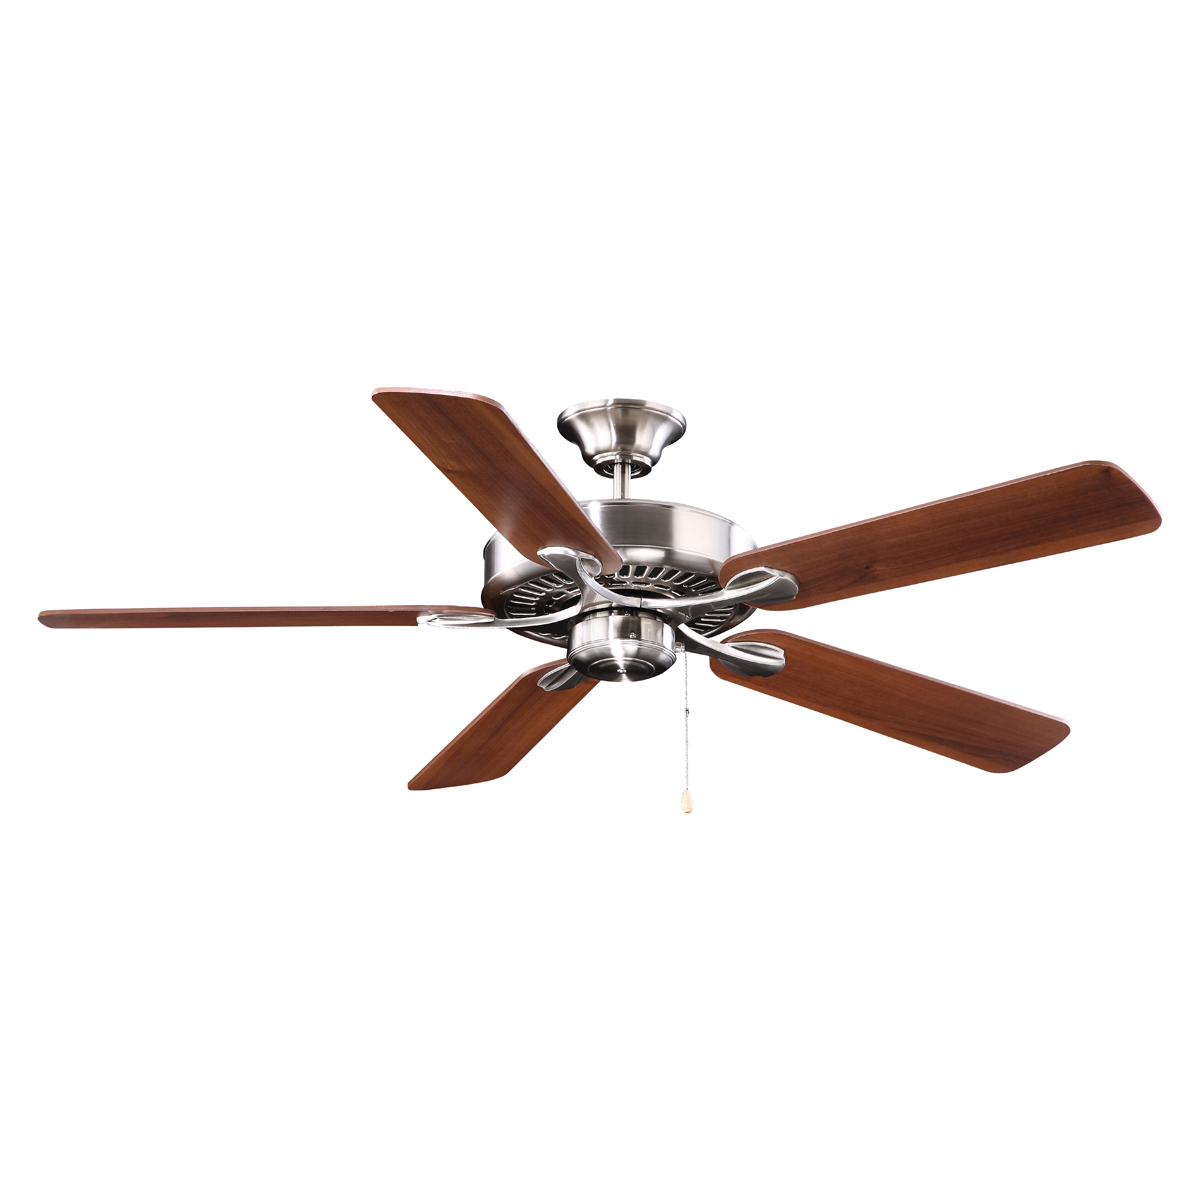 Picture of Boston Harbor YG314-ES-EN-BN Ceiling Fan, 0.8 A, 120 V, 5-Blade, 52 in Sweep, 3549 cfm Air